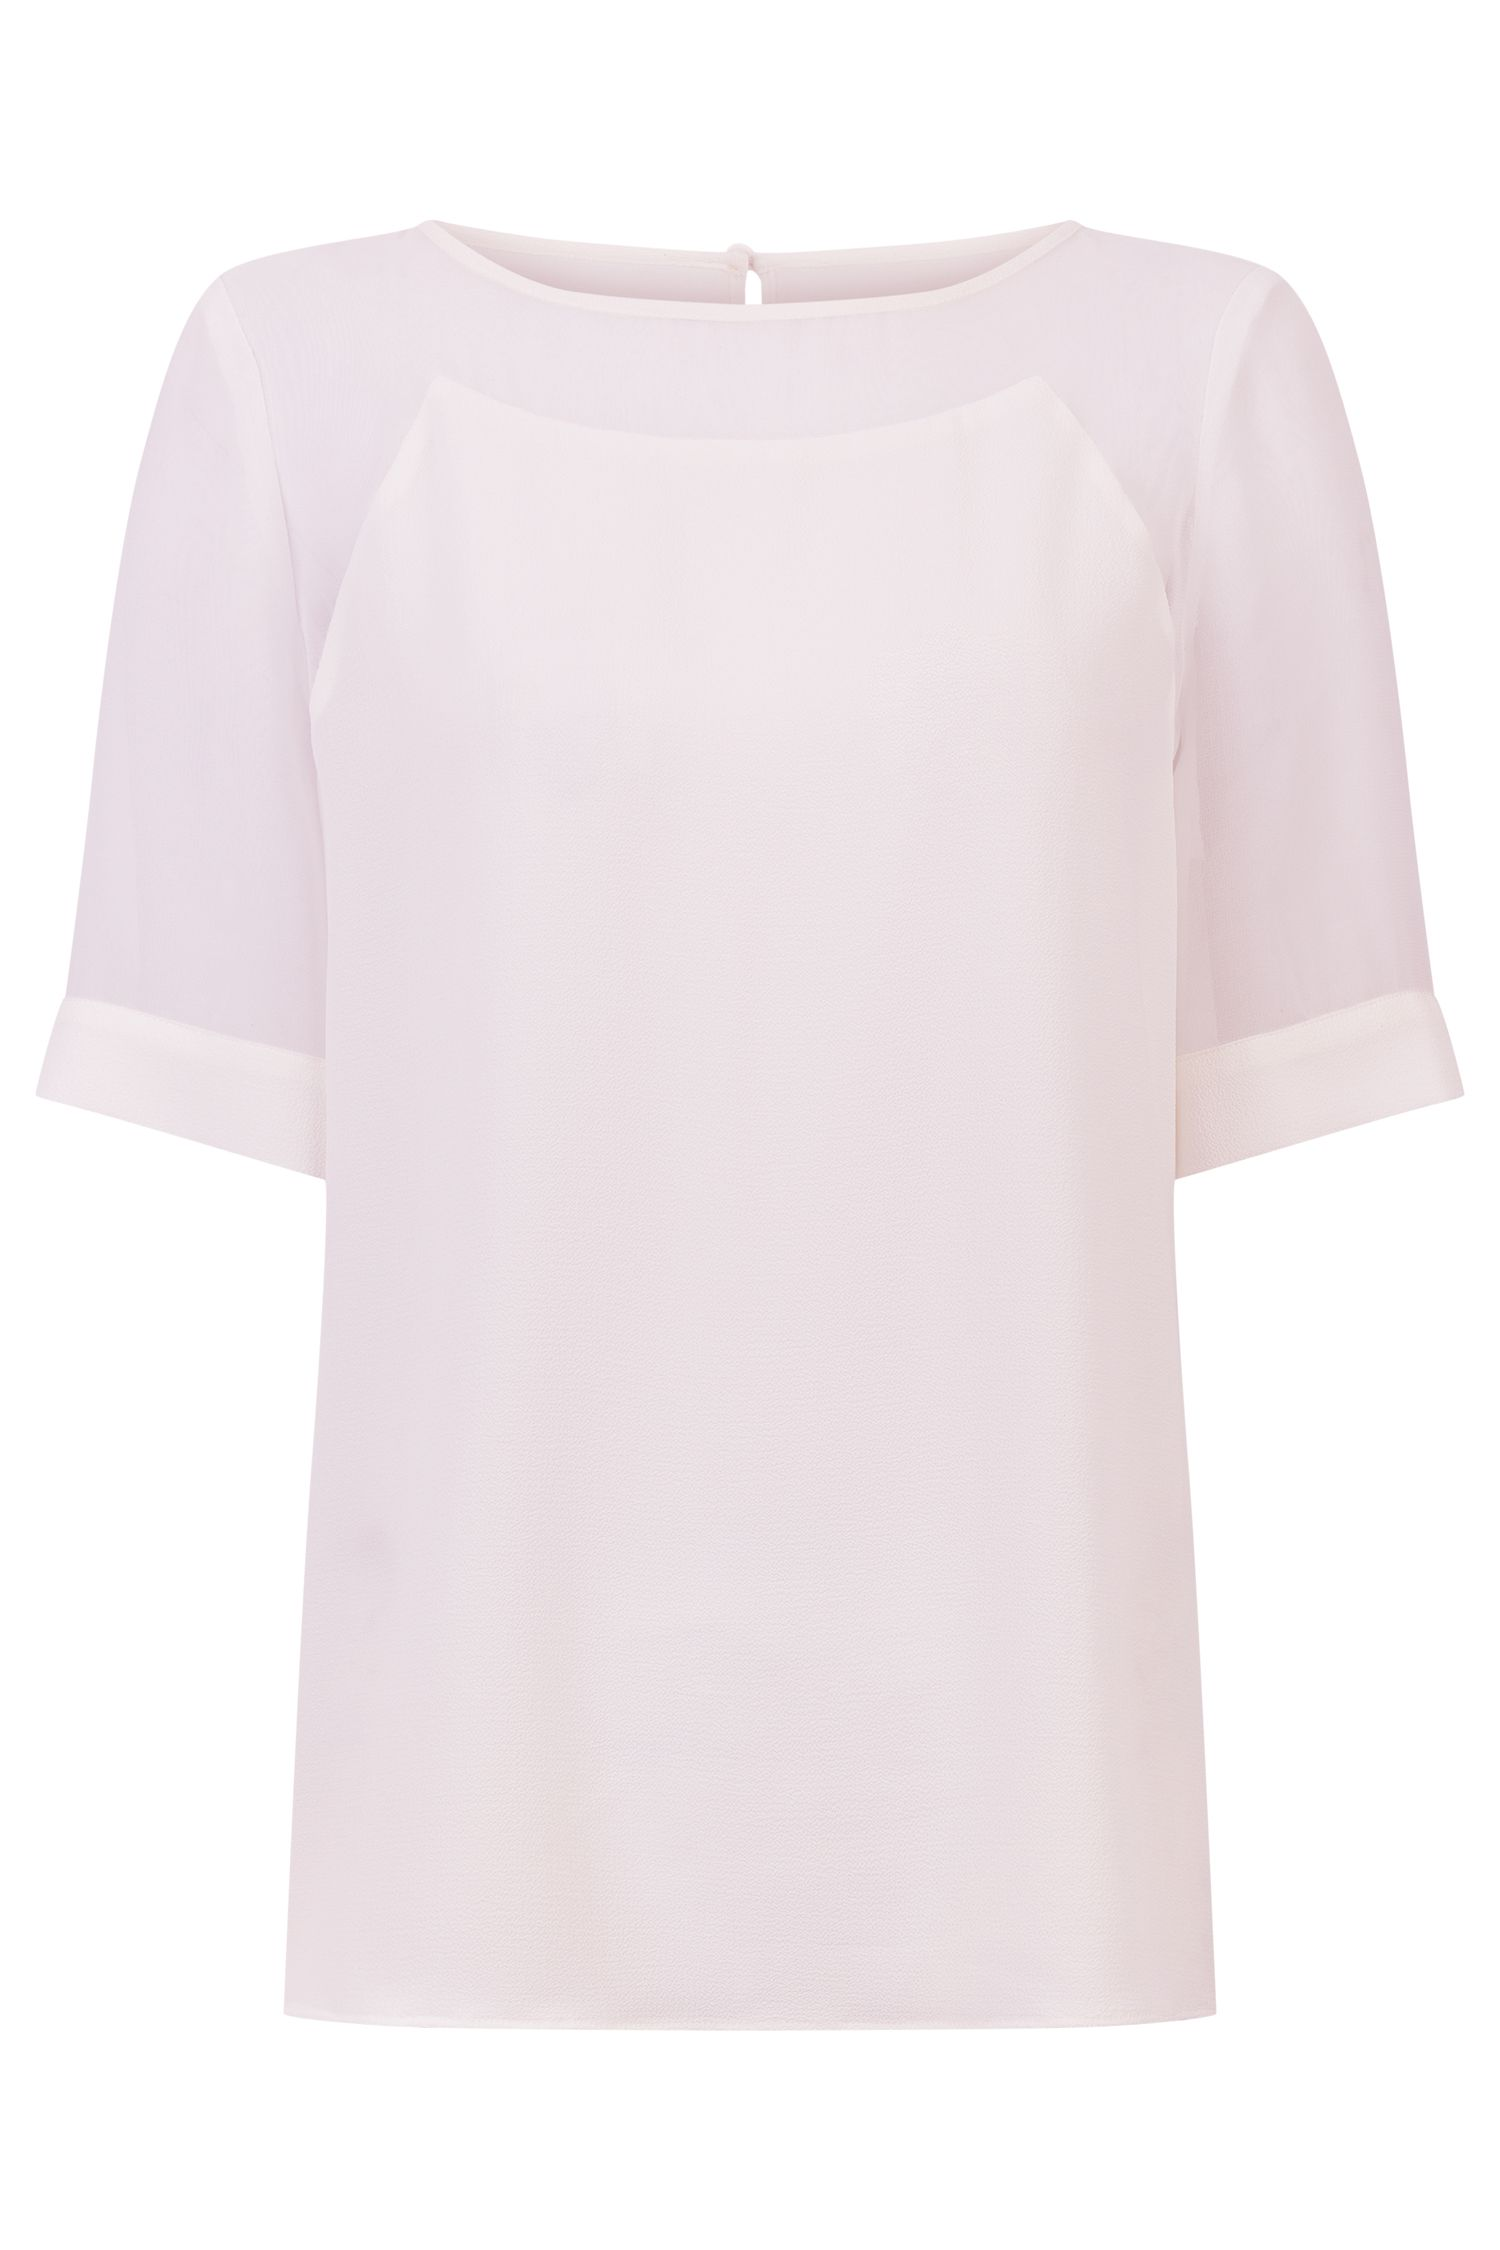 Fenn Wright Manson Berlin Top, White